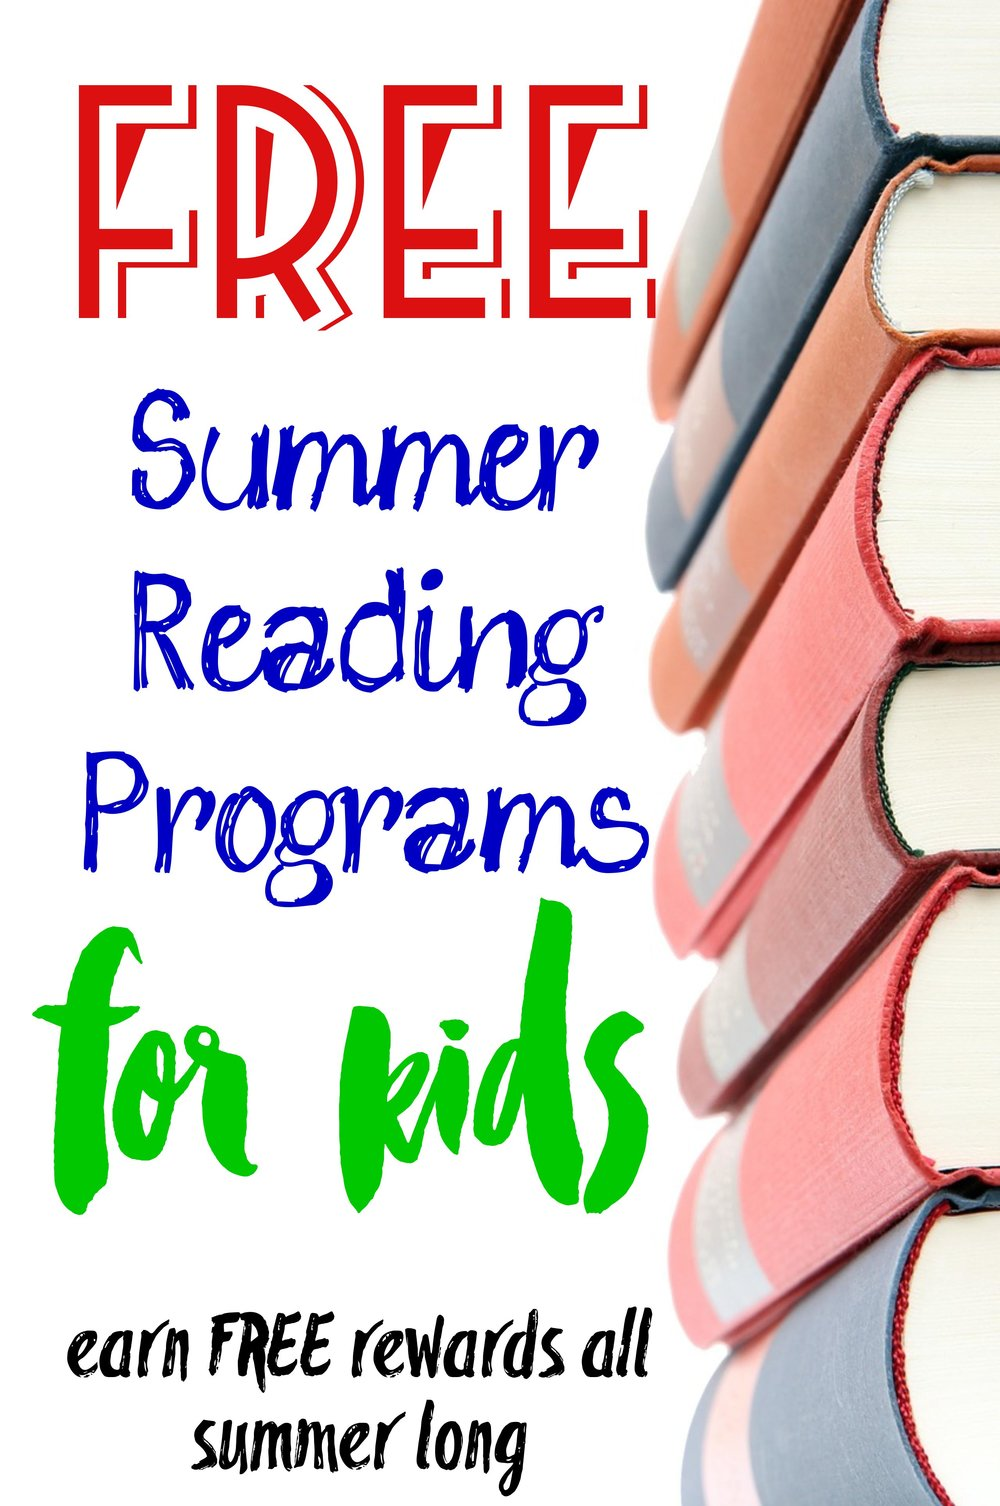 10 Summer Reading Programs for Kids | FREE